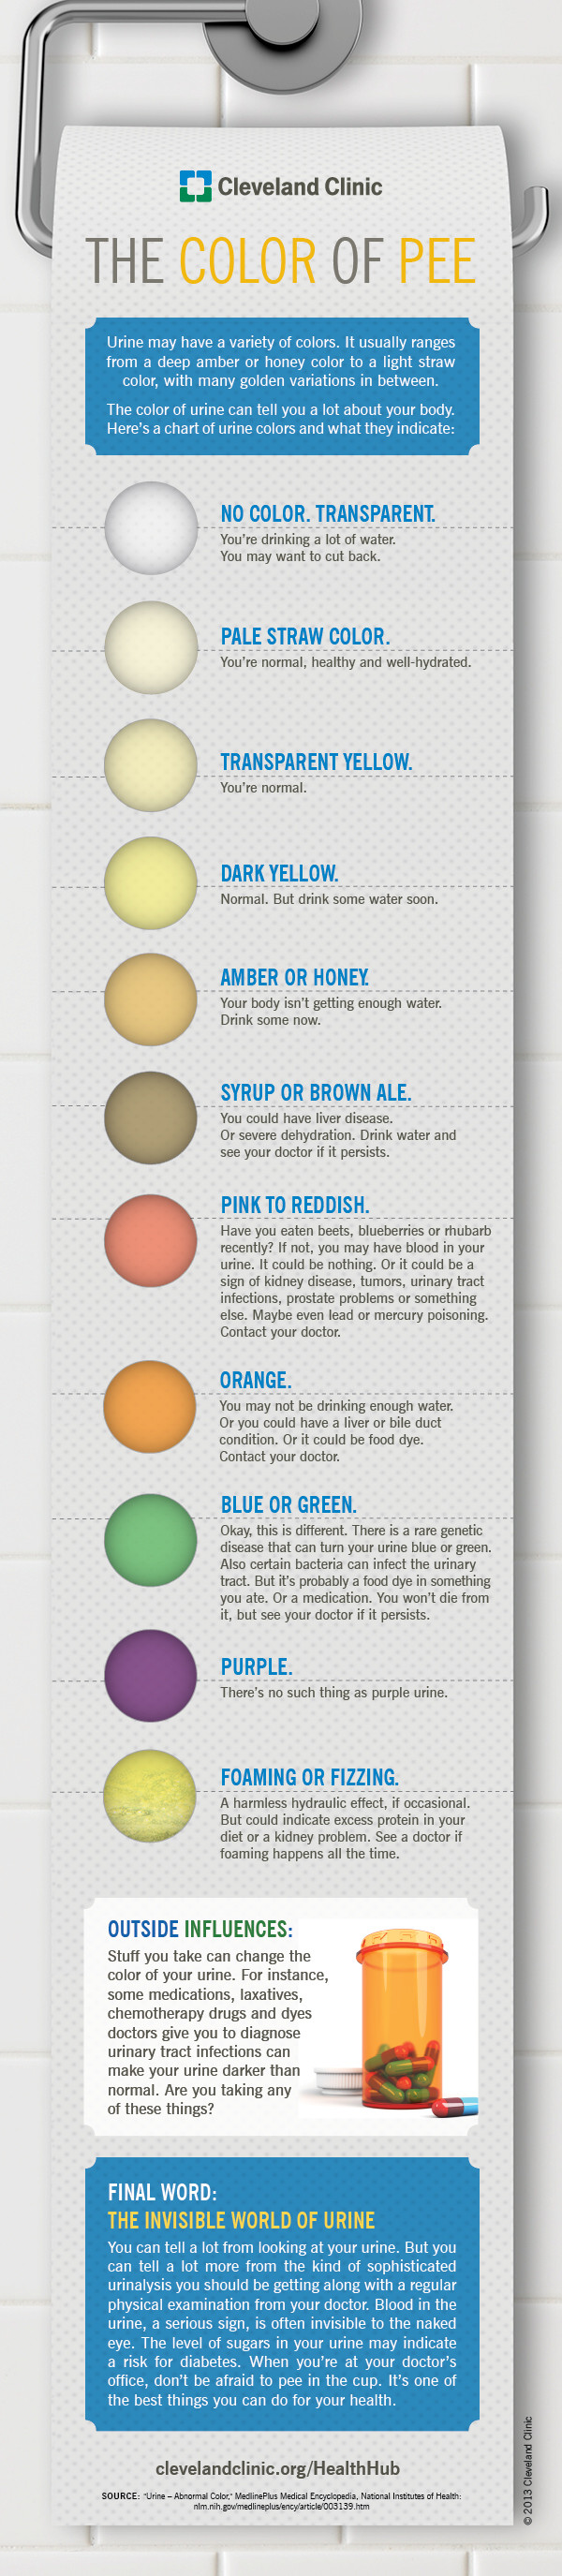 https://dingo.care2.com/pictures/greenliving/uploads/2015/01/TheColorOfPeeInfographic.jpg